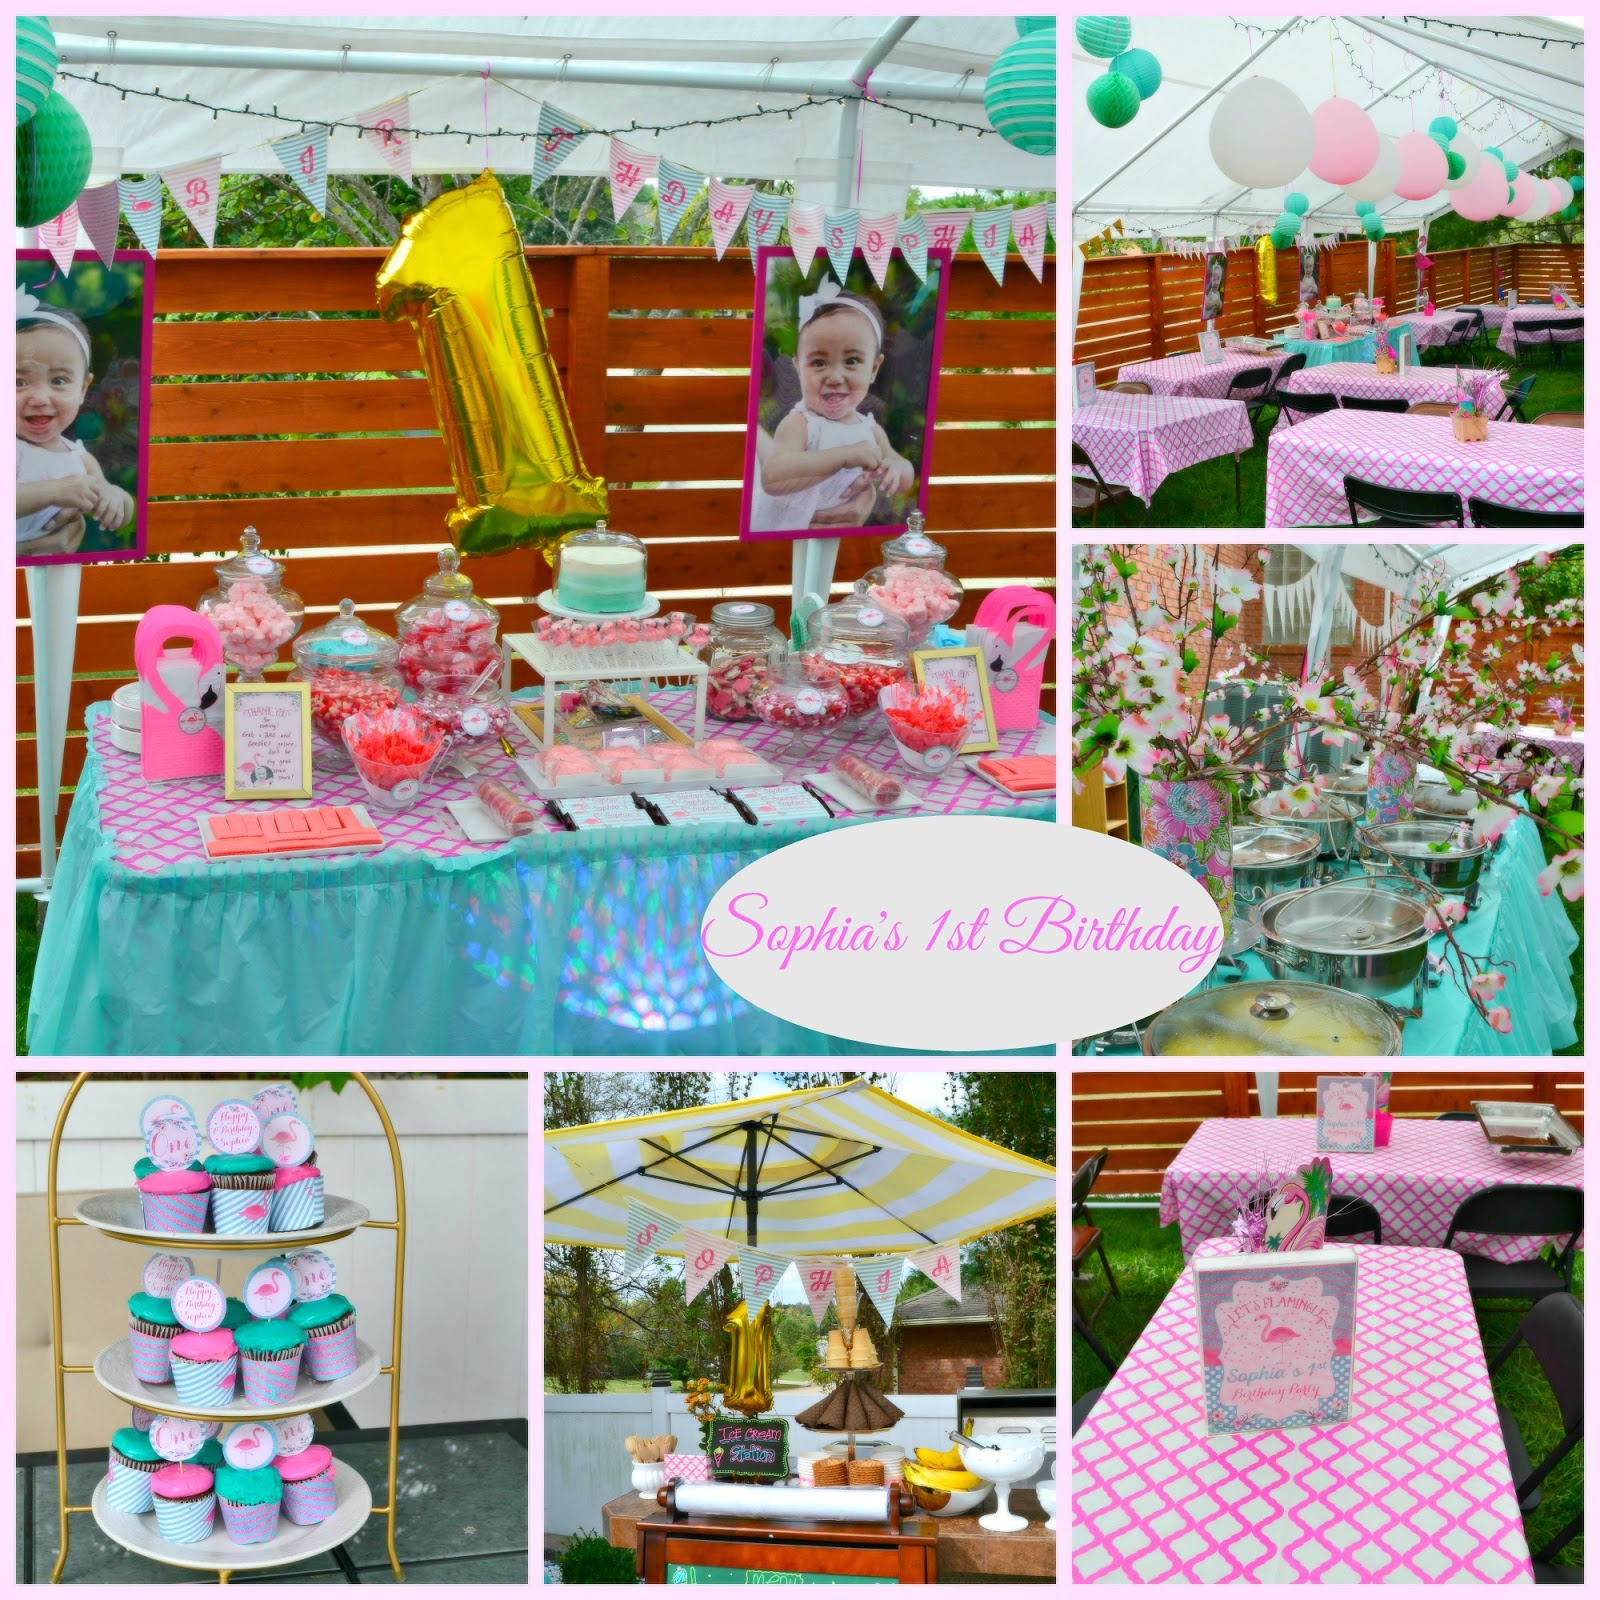 Life Home at 2102 Sophias 1st Birthday Flamingle Party